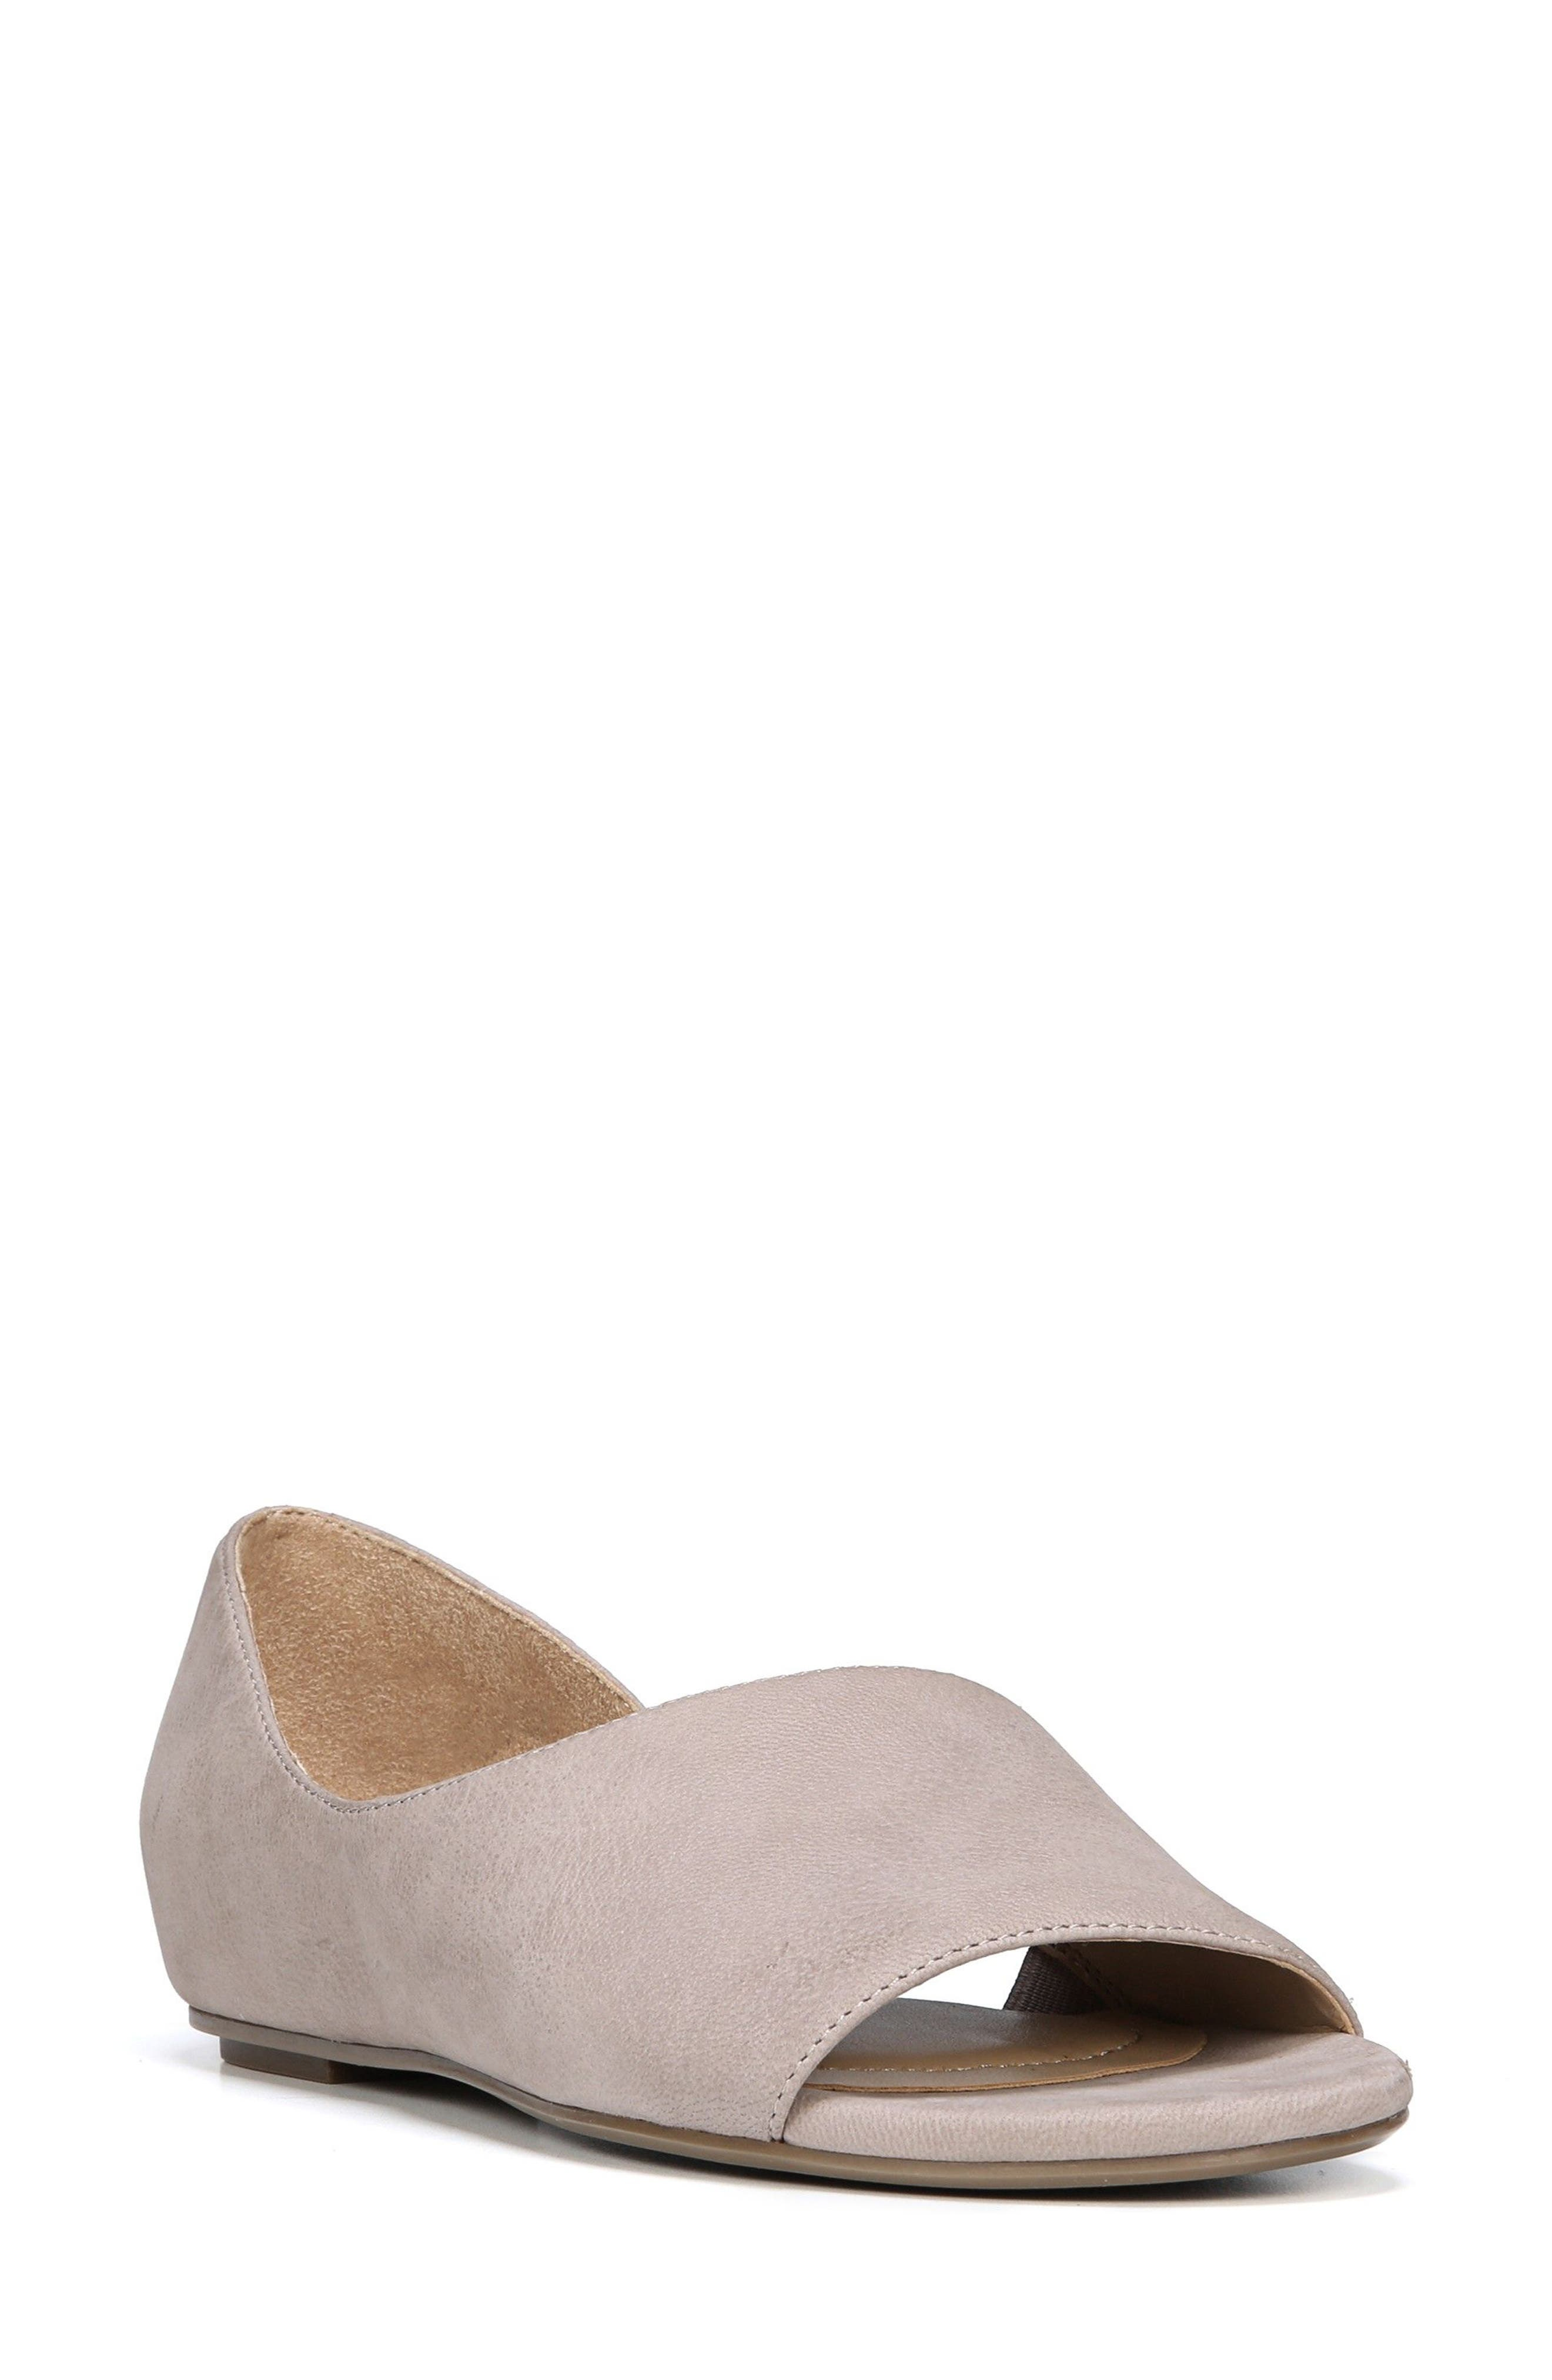 Lucie Half d'Orsay Flat,                             Main thumbnail 1, color,                             Dove Leather